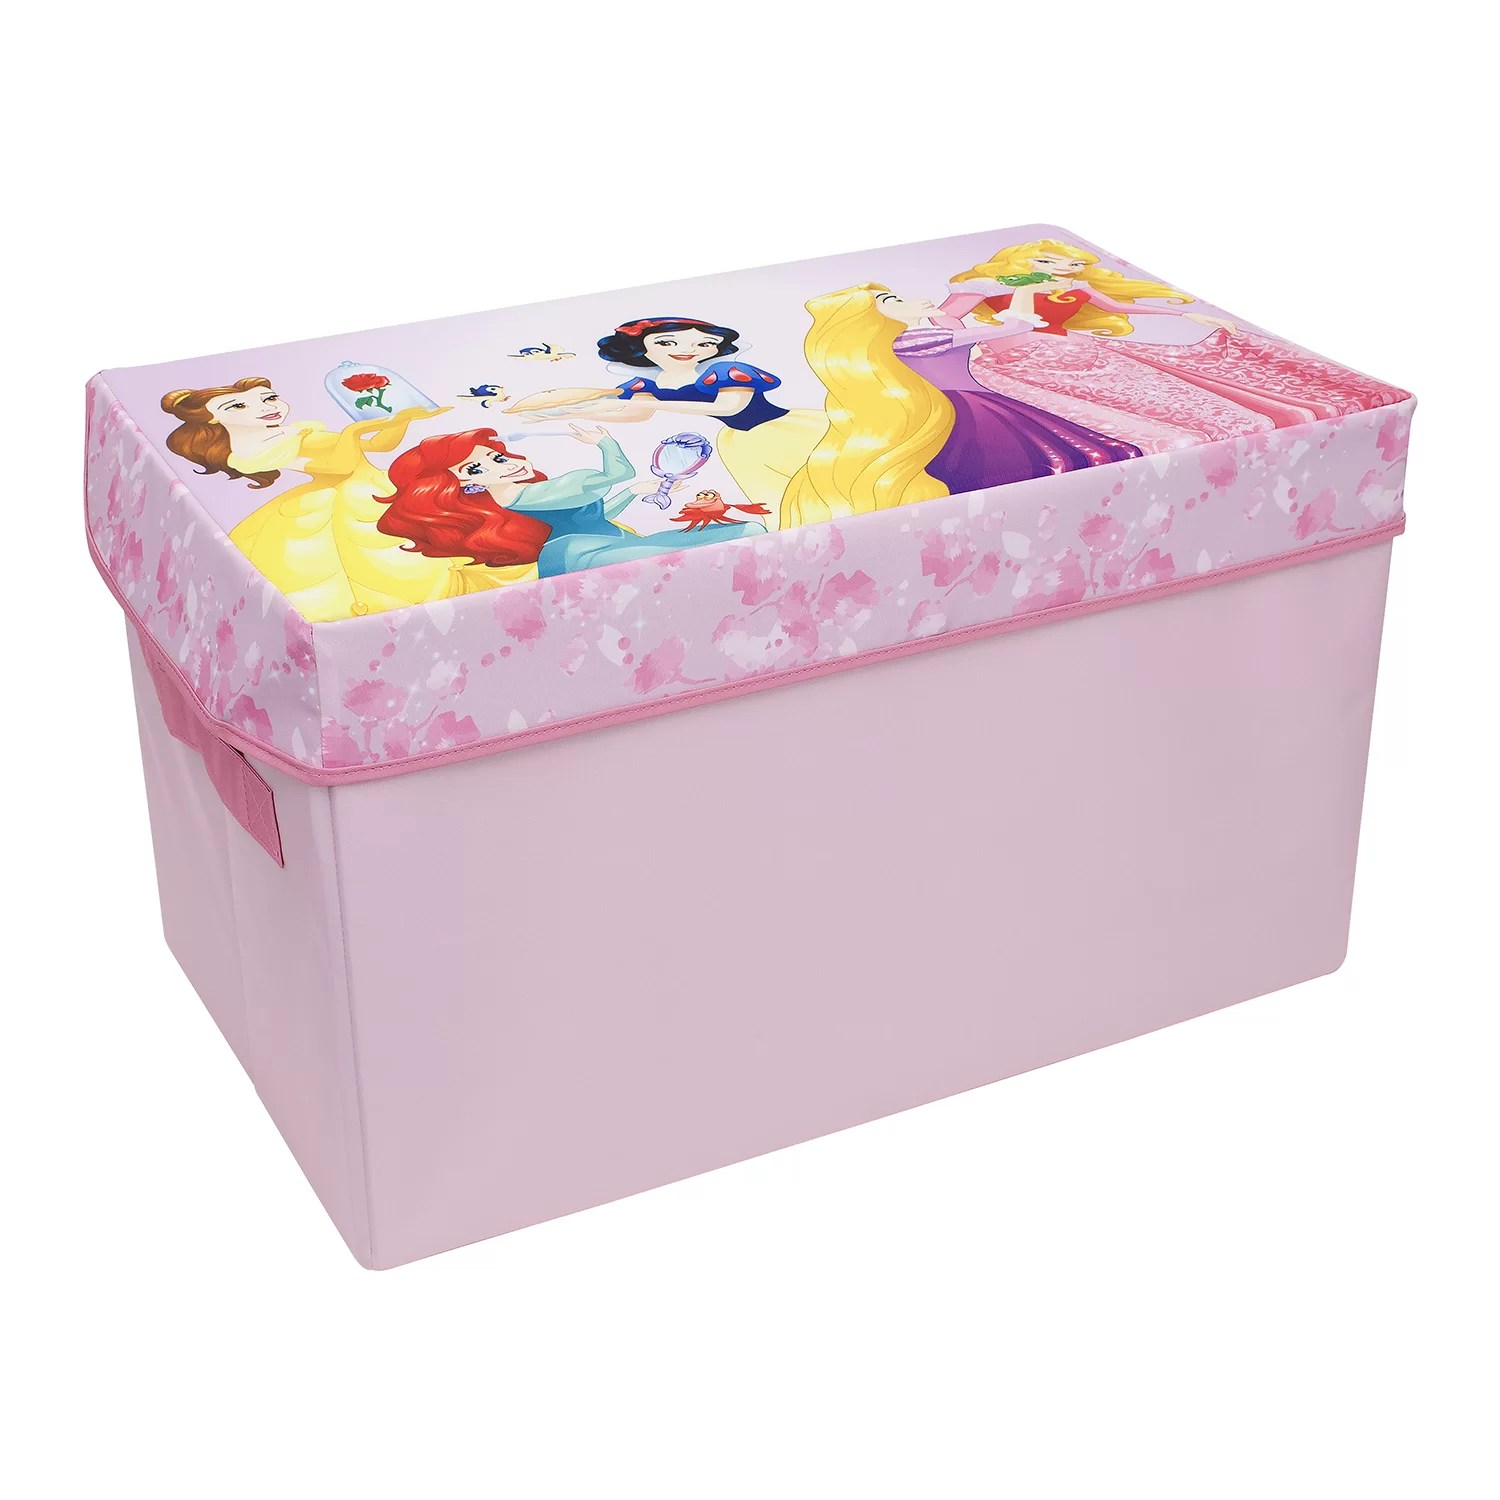 Toy Chests Disney Forever Princess Collapsible Kids Toy Storage Chest Foldable Toy Basket Organizer With Strong Handles Design